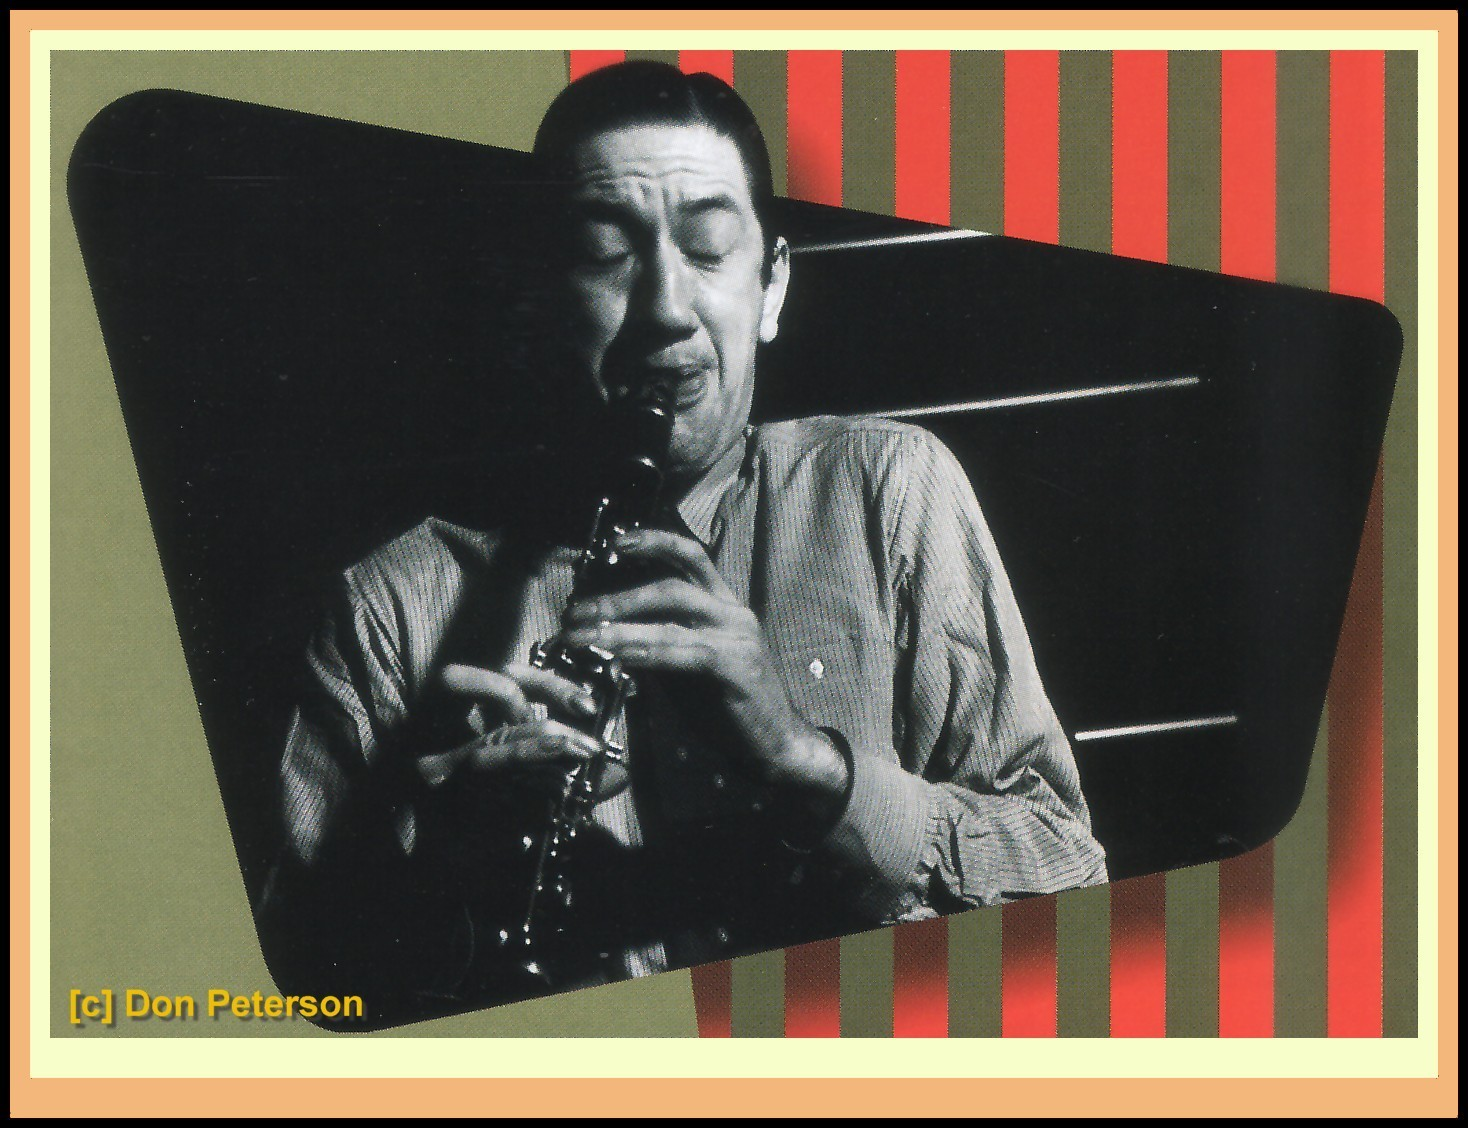 Jazz profiles pee wee russell a singular scintillating he screwed his rubbery face into woeful expressions as he simultaneously fought the clarinet the chord changes and his imagination hexwebz Choice Image